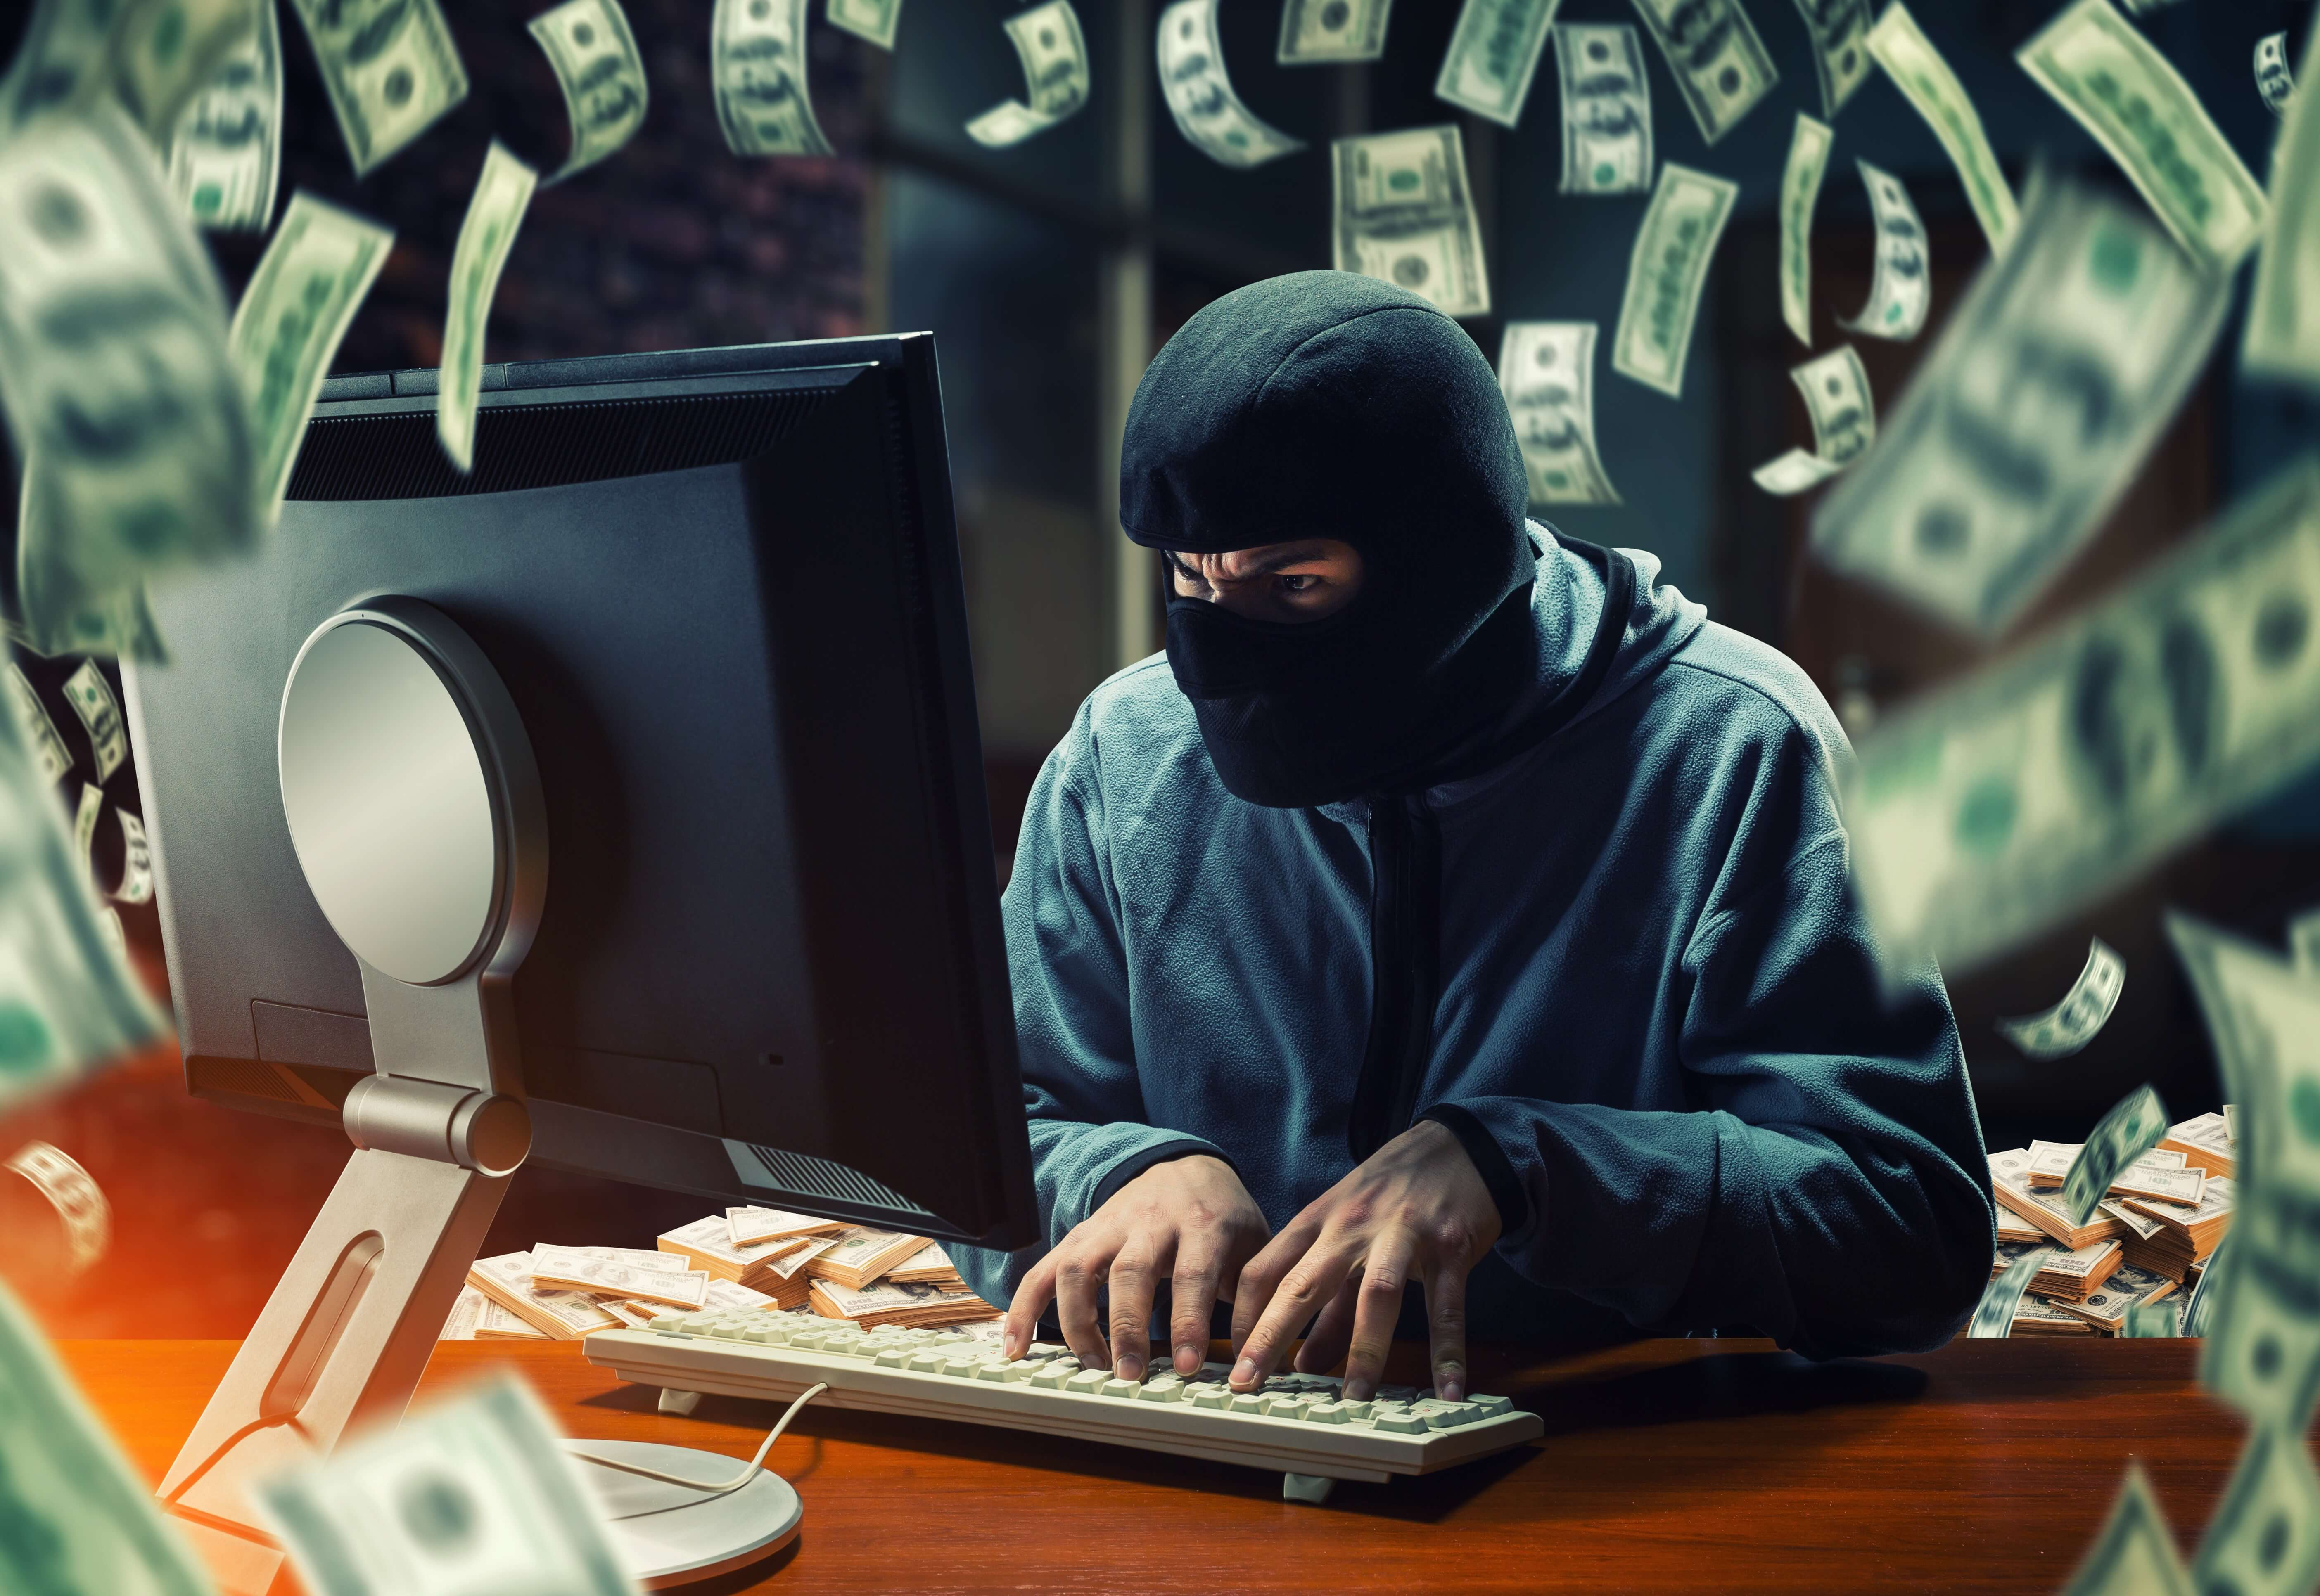 Cyber Crime - Who's Protecting You?